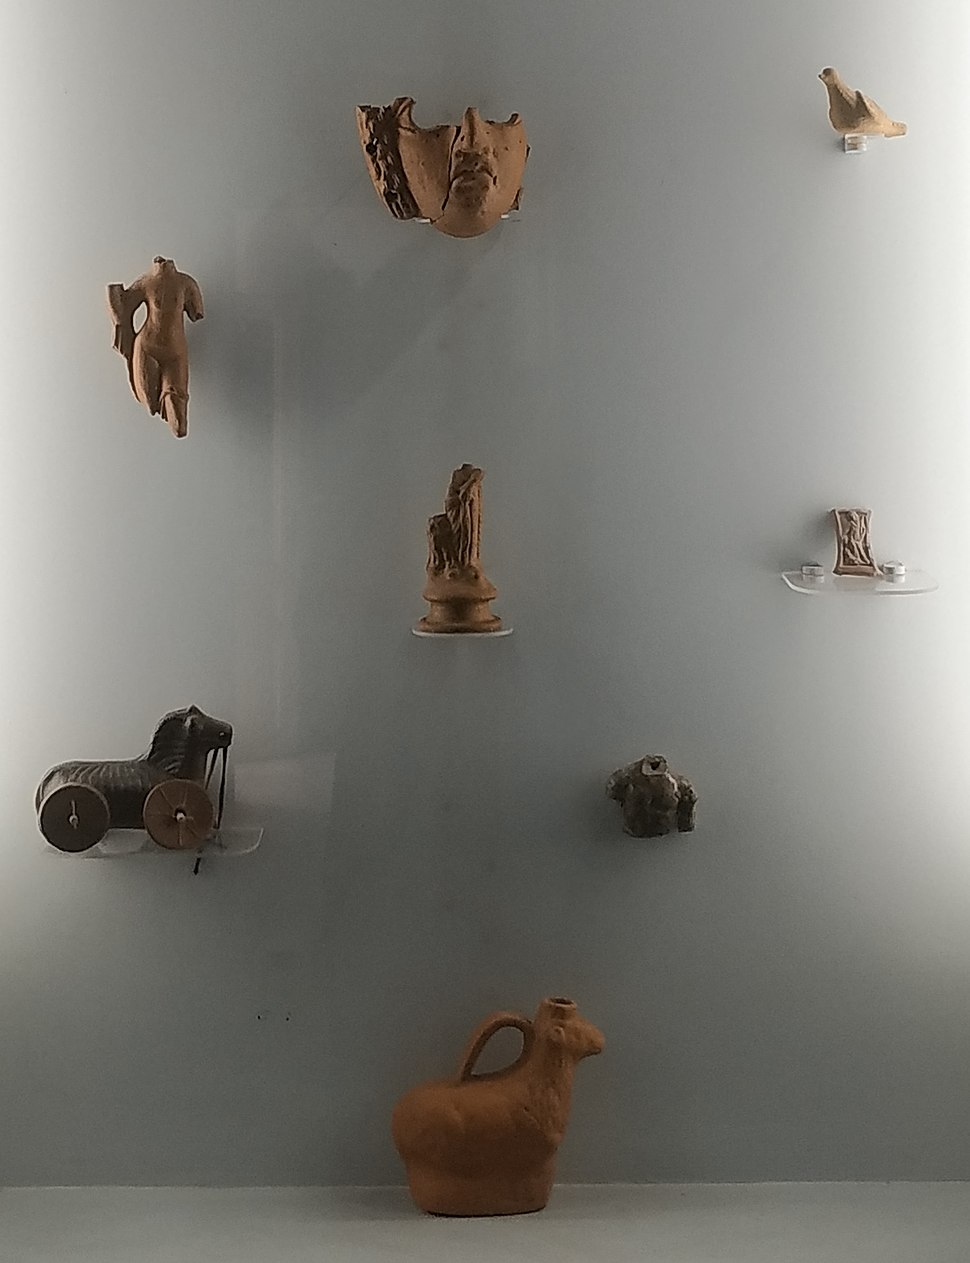 Toys exibited at National Museum in Požarevac